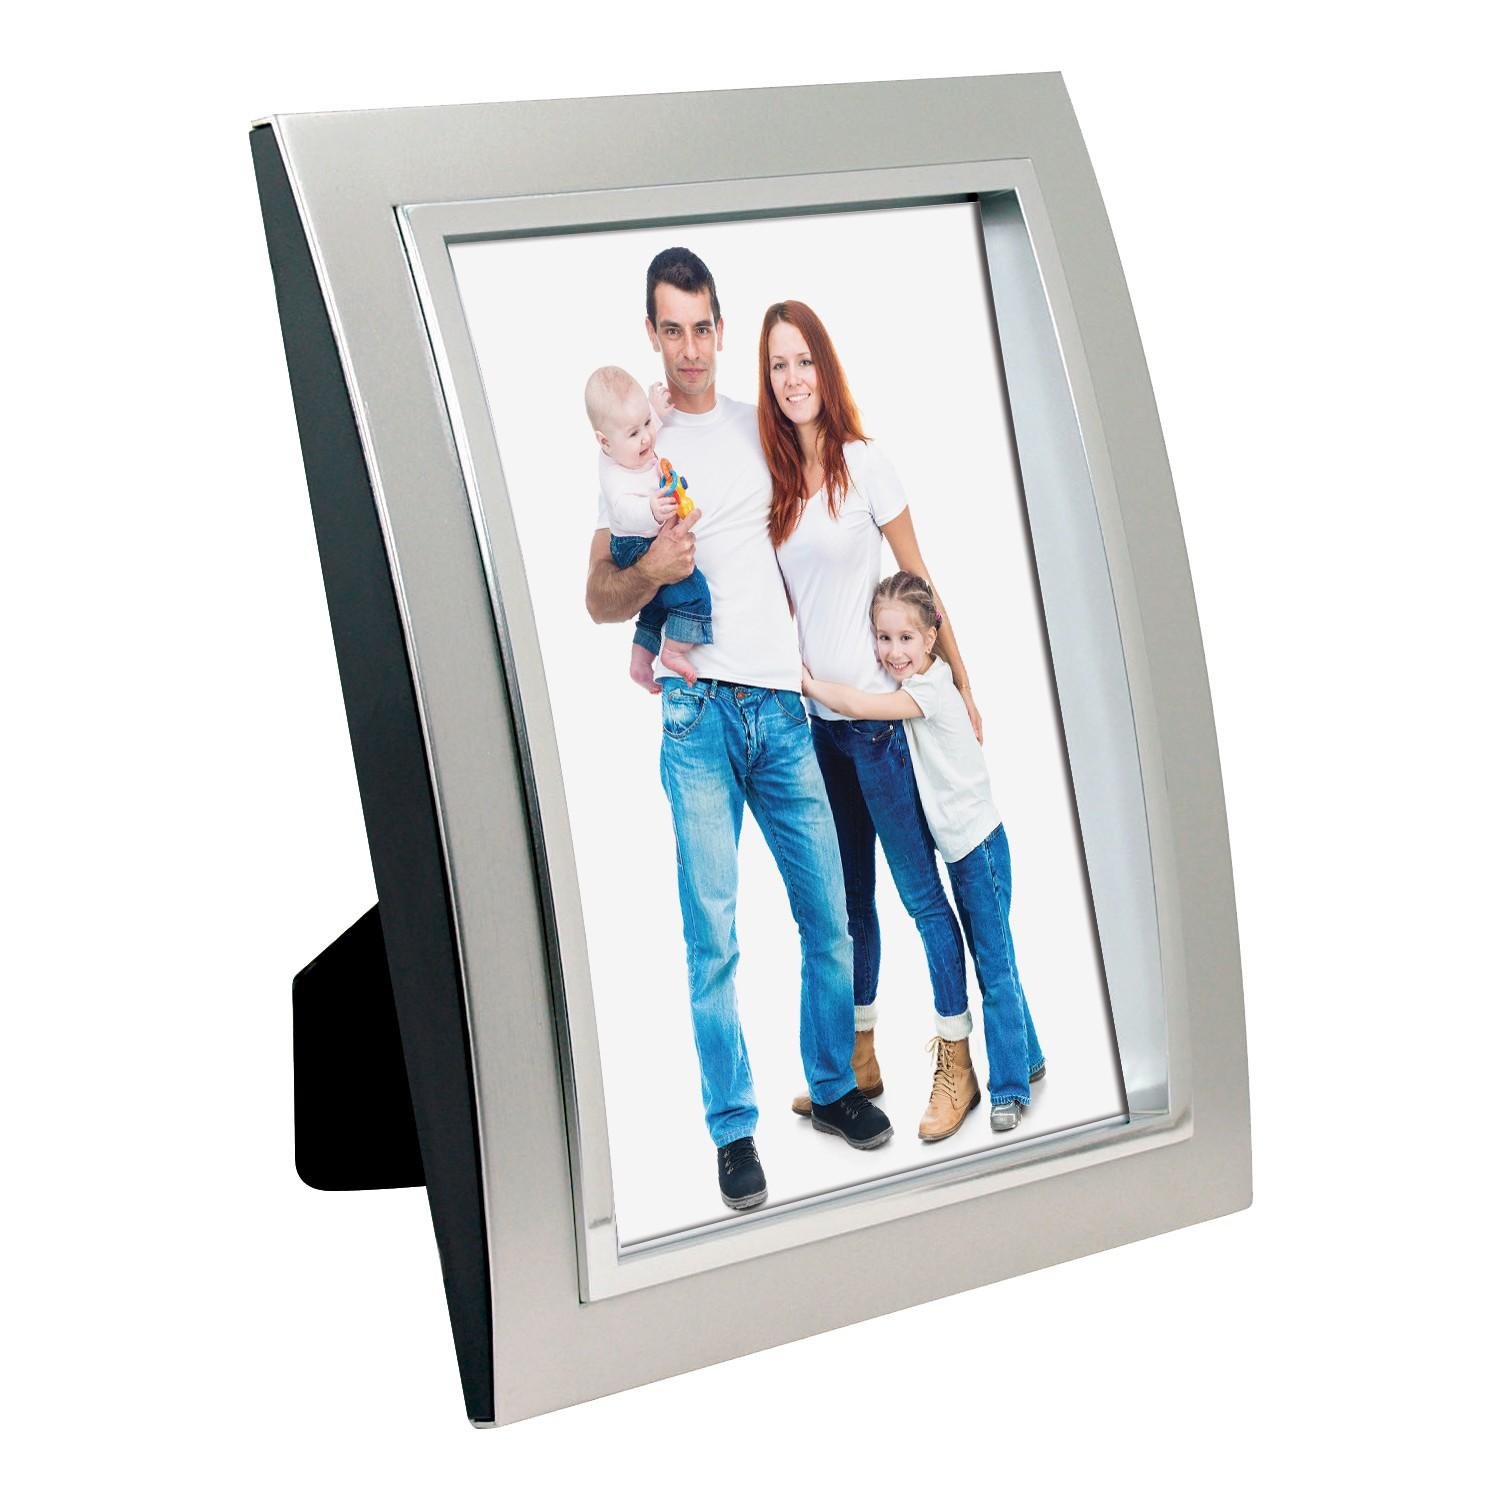 Wholesale 4x6 and 5x7 silver plastic picture frames neil enterprises wholesale plastic silver picture frame jeuxipadfo Image collections